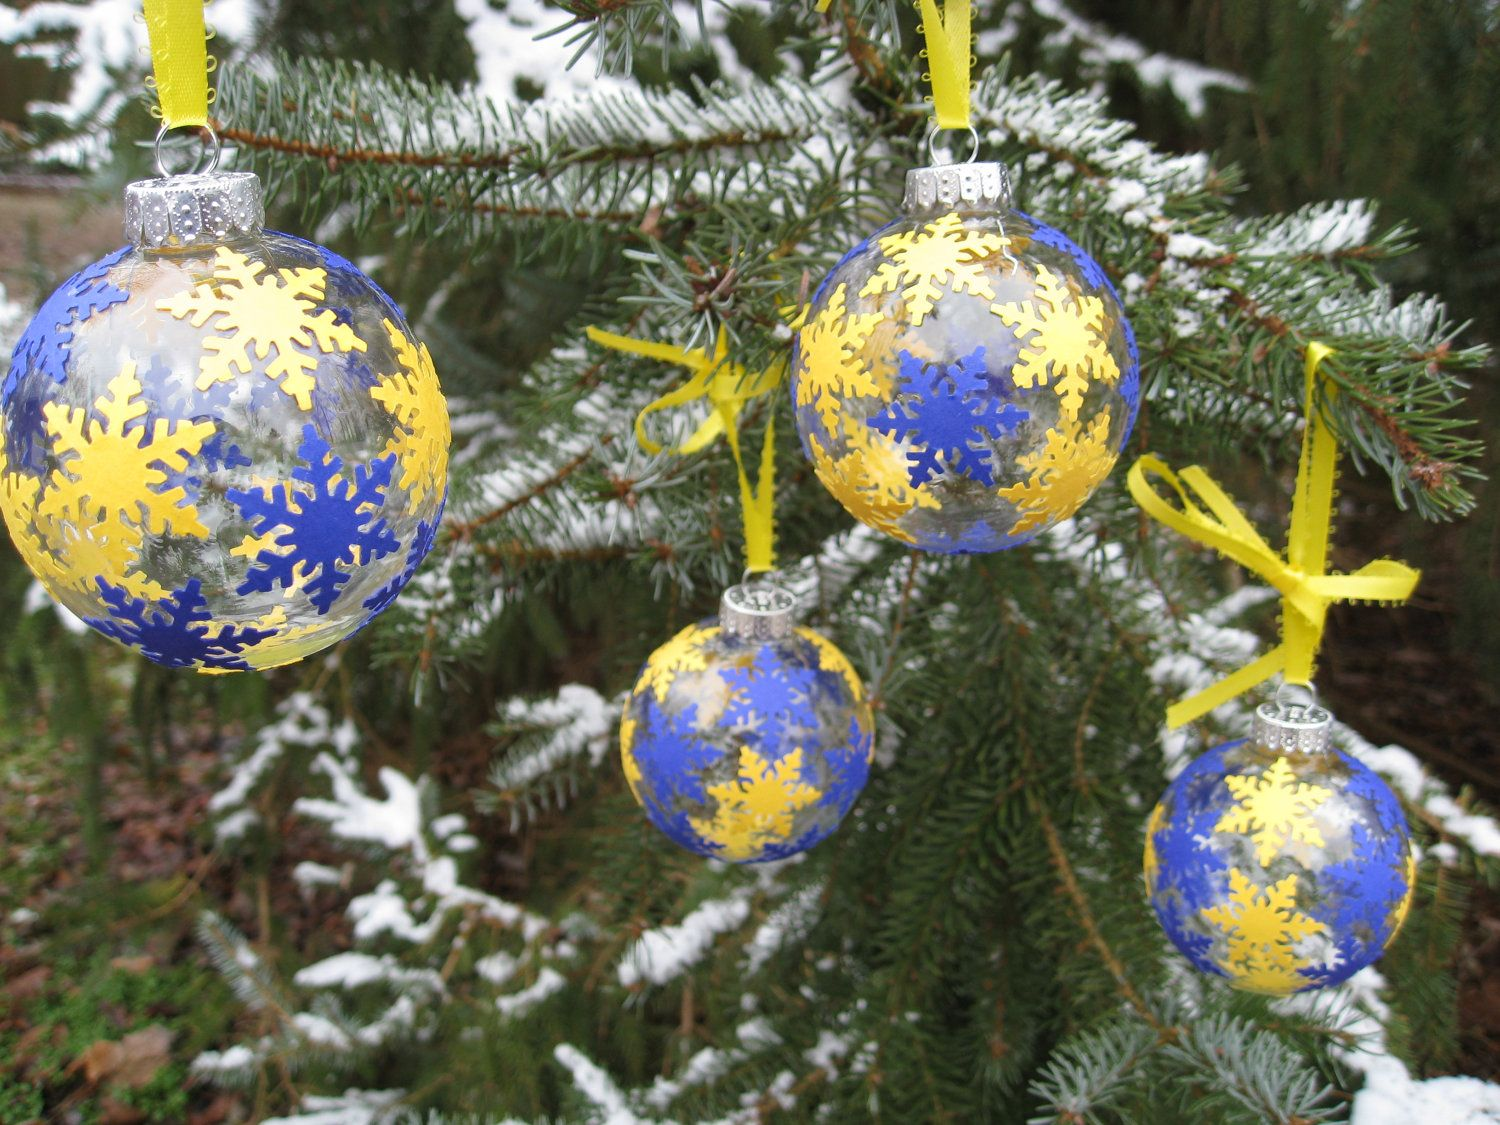 University of michigan christmas ornaments - University Of Michigan Wolverines Christmas Tree Ornaments With Snowflakes Maize Blue